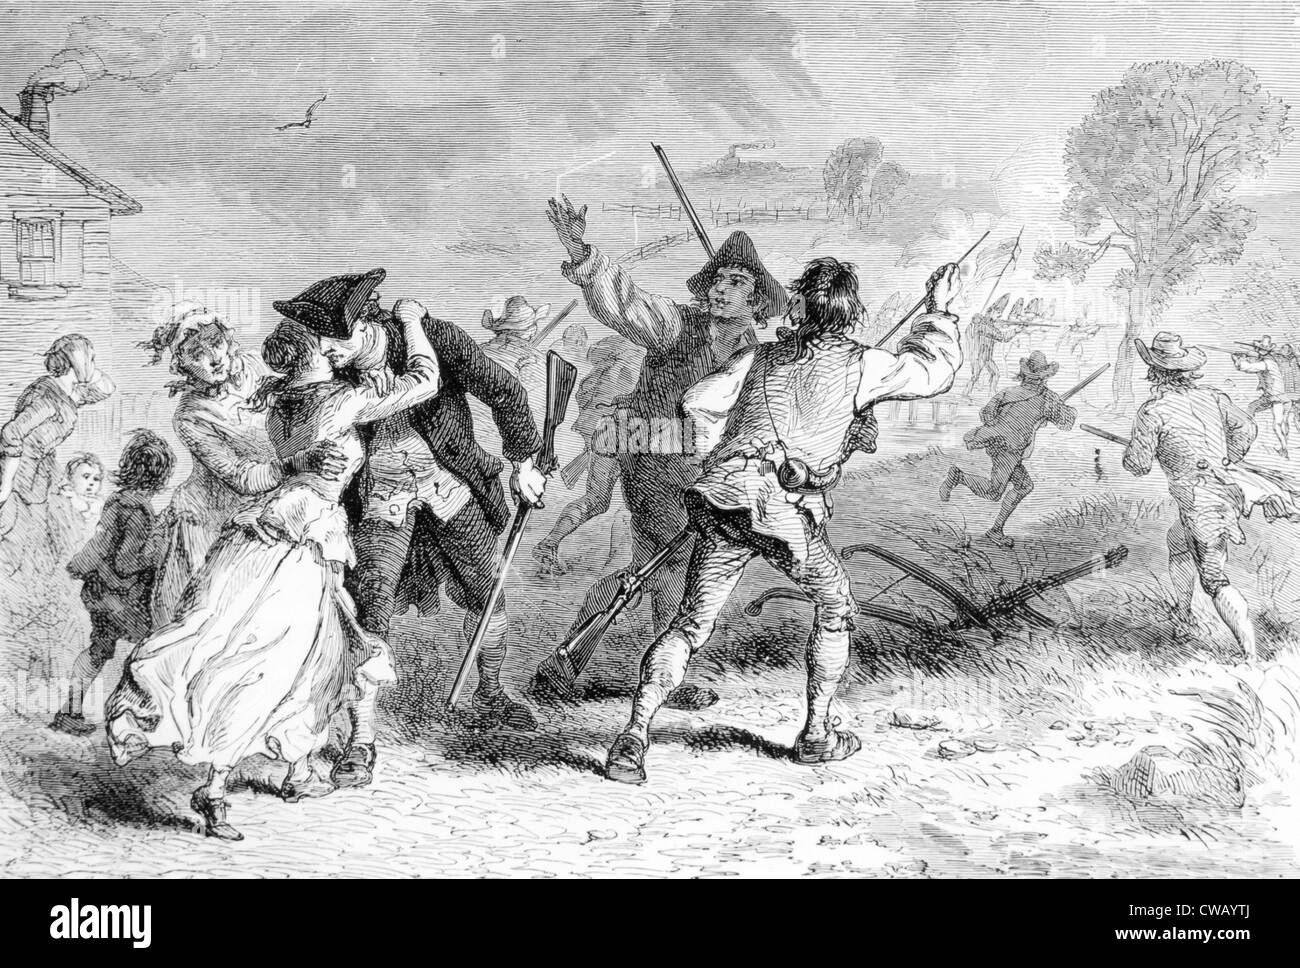 The Battle of Concord, April 19, 1775 - Stock Image